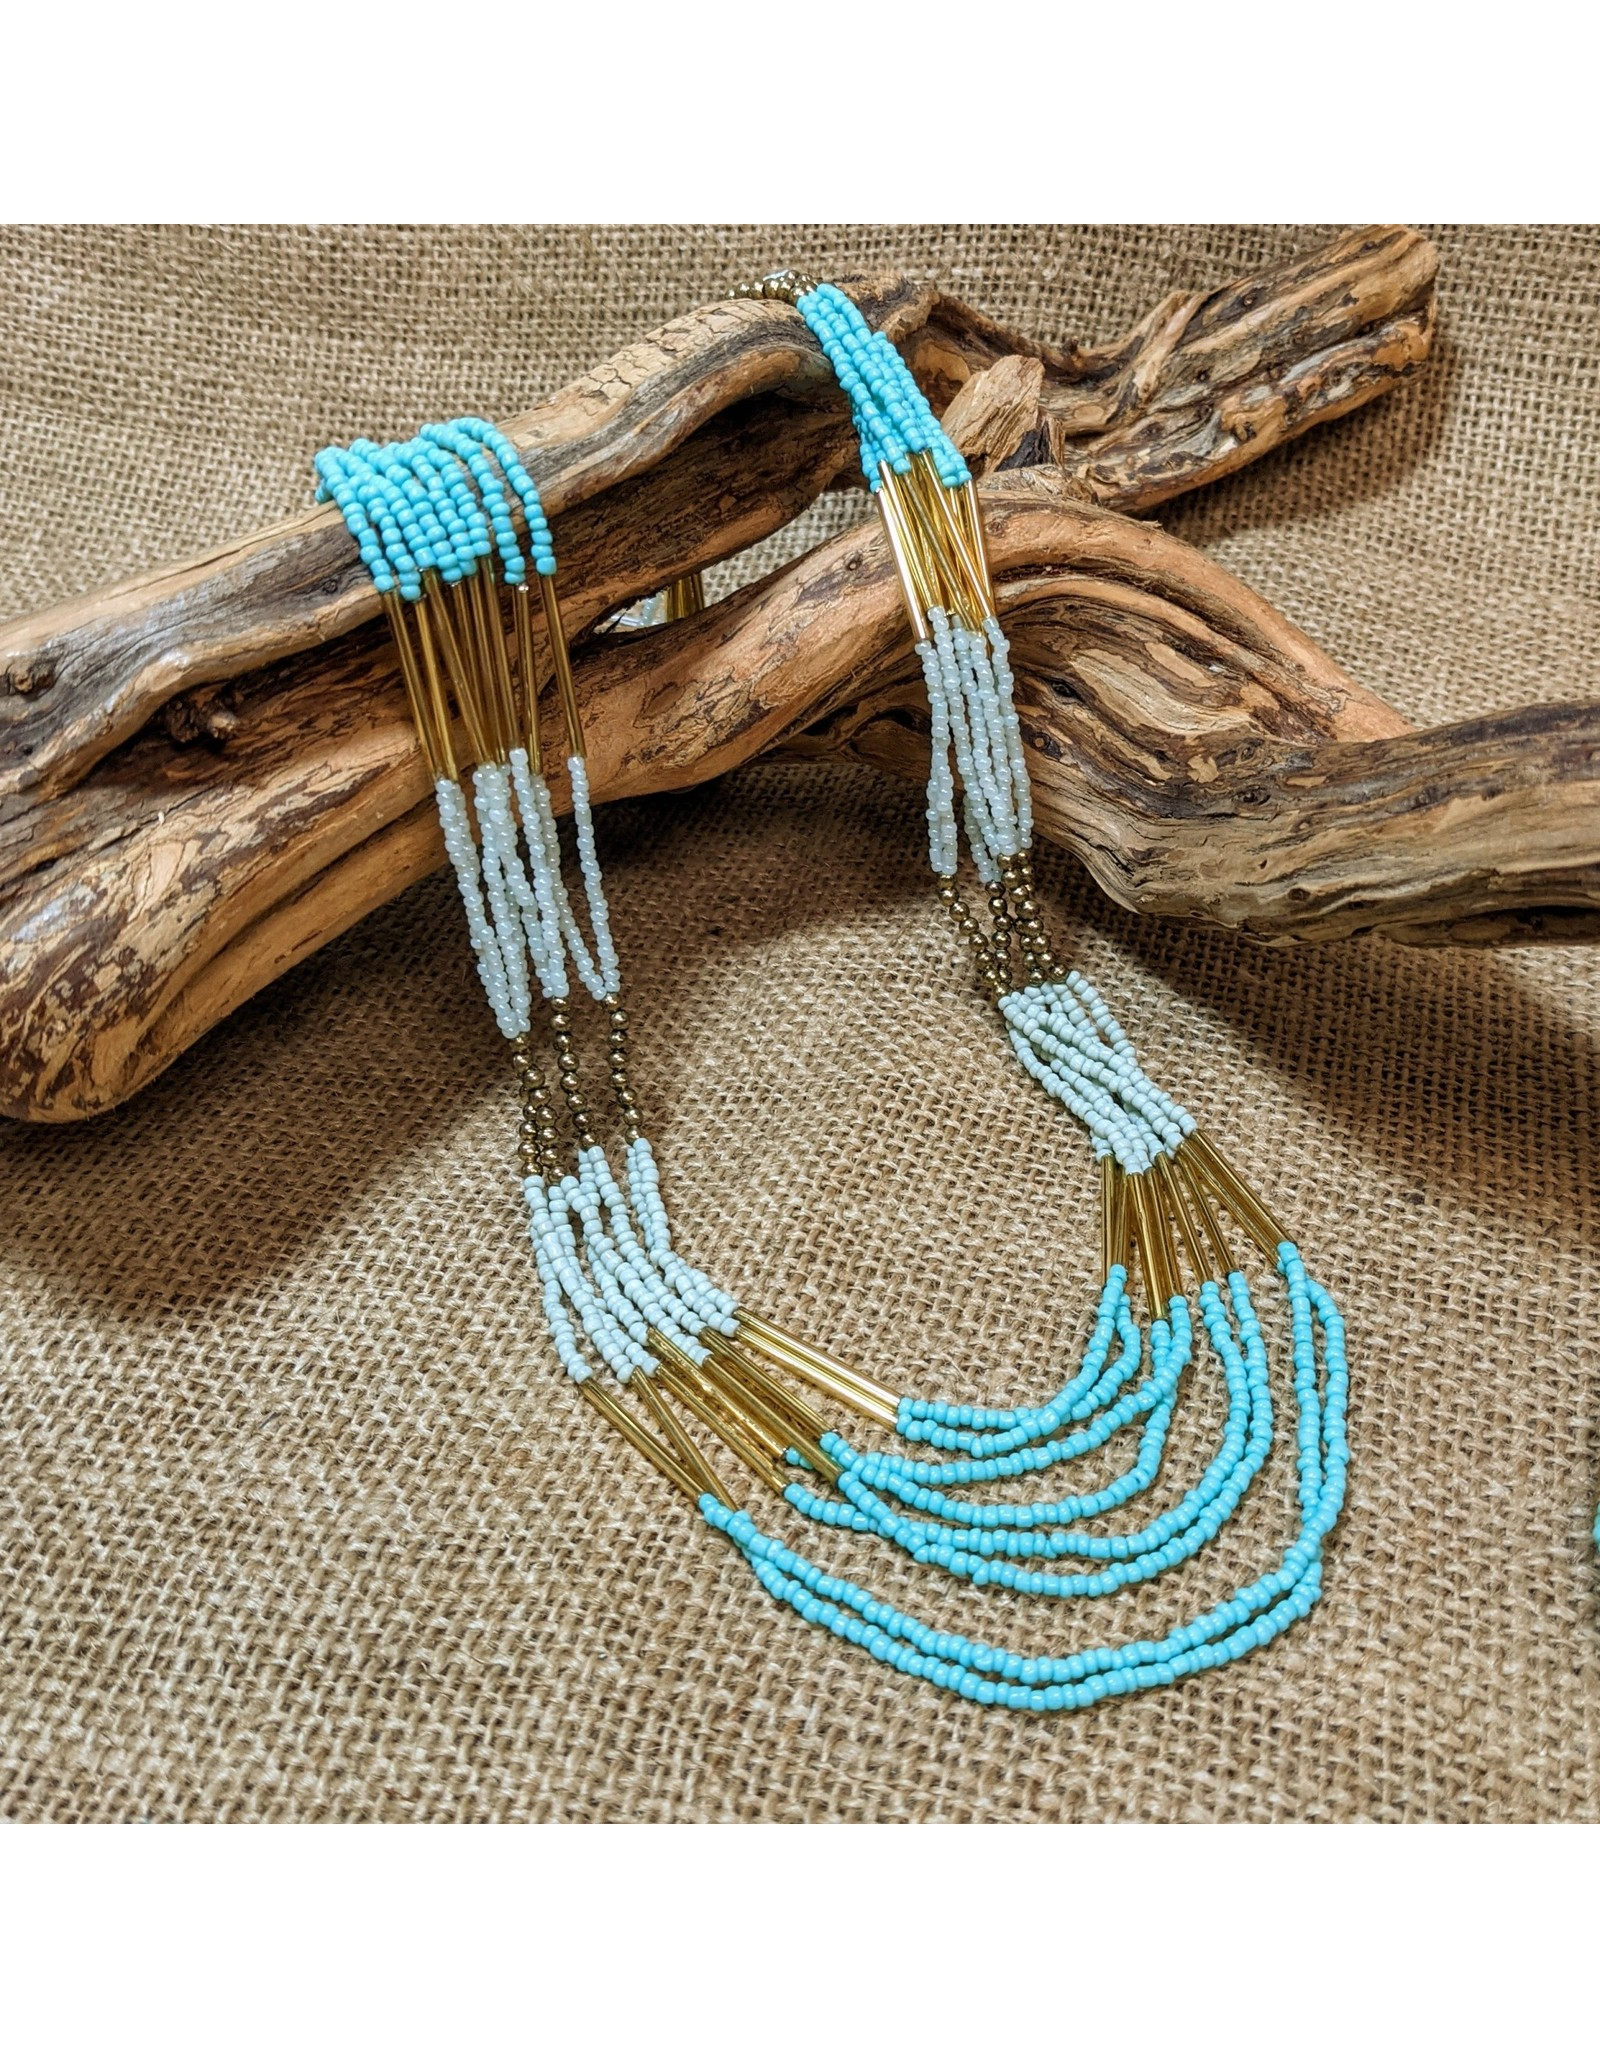 Ten Thousand Villages Stranded Teal Bead Necklace, India